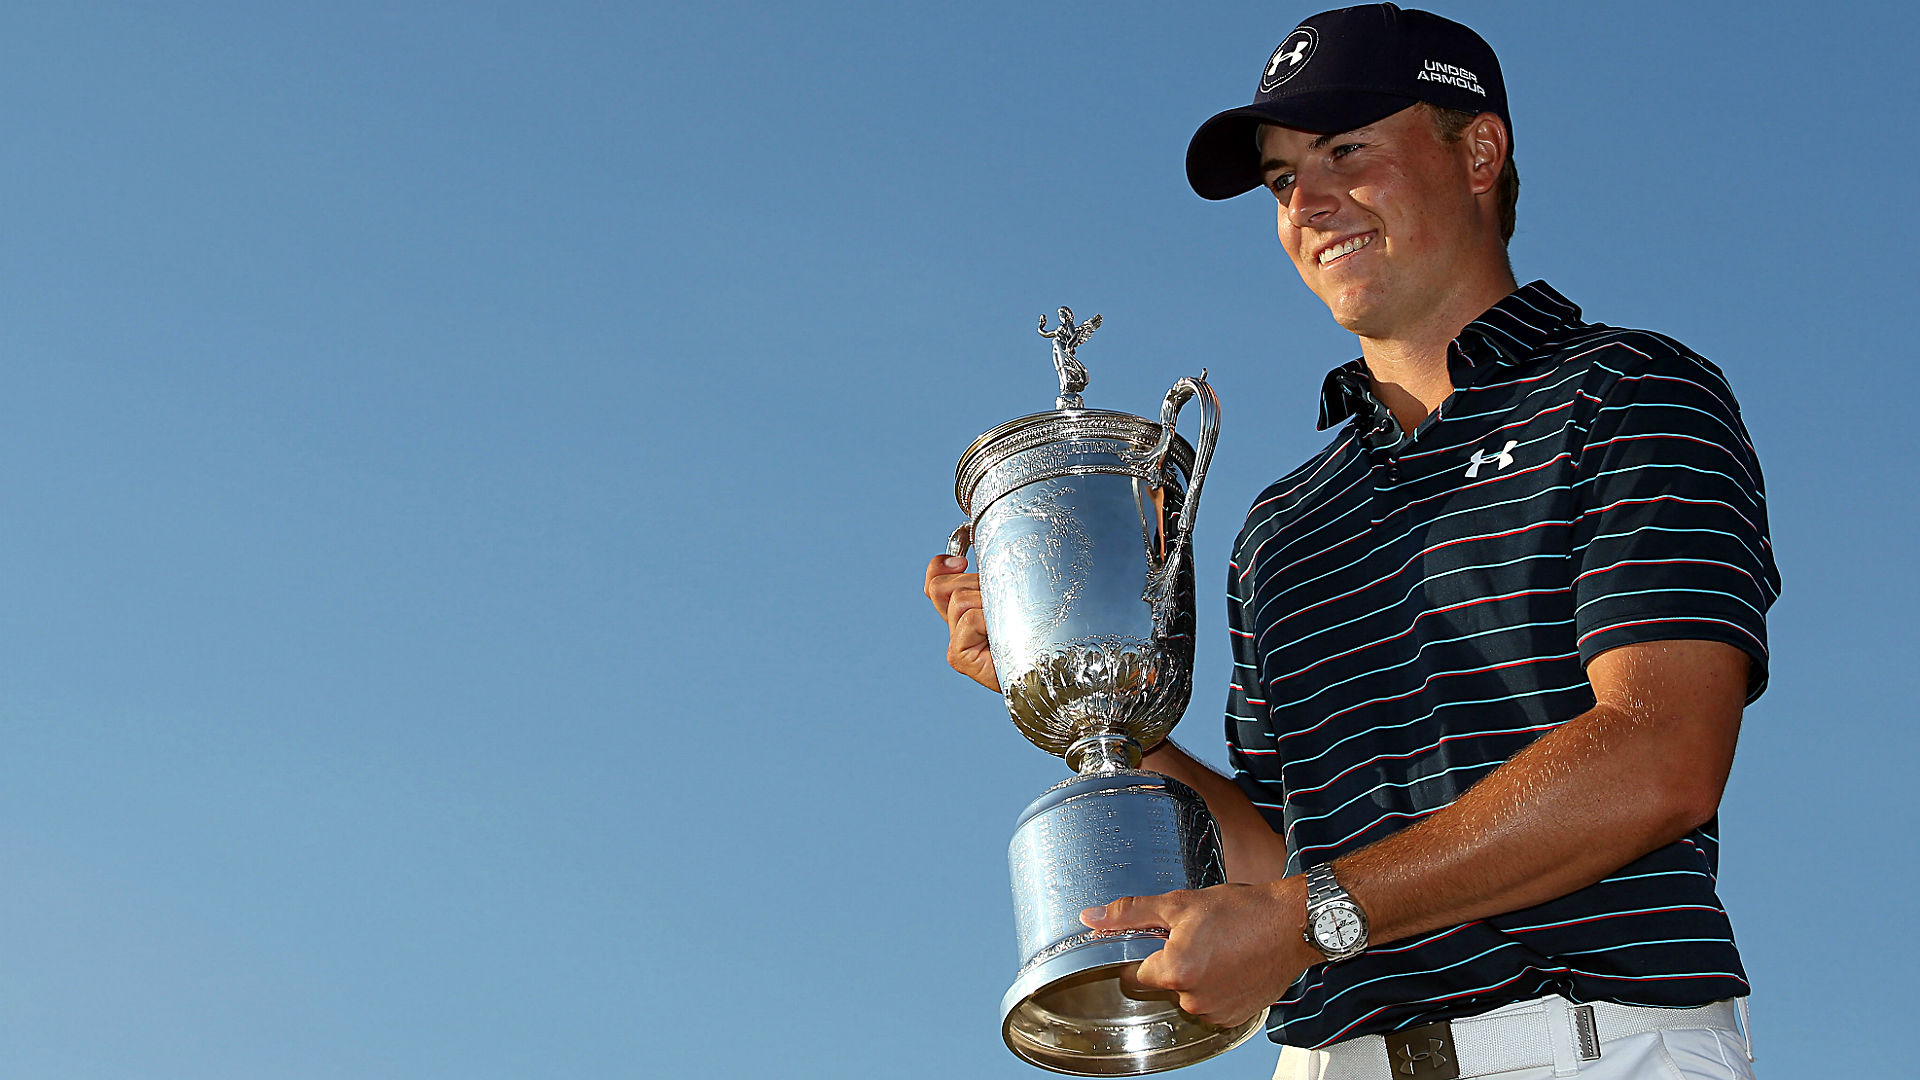 British Open odds – Jordan Spieth opens as co-favorite to win third straight major